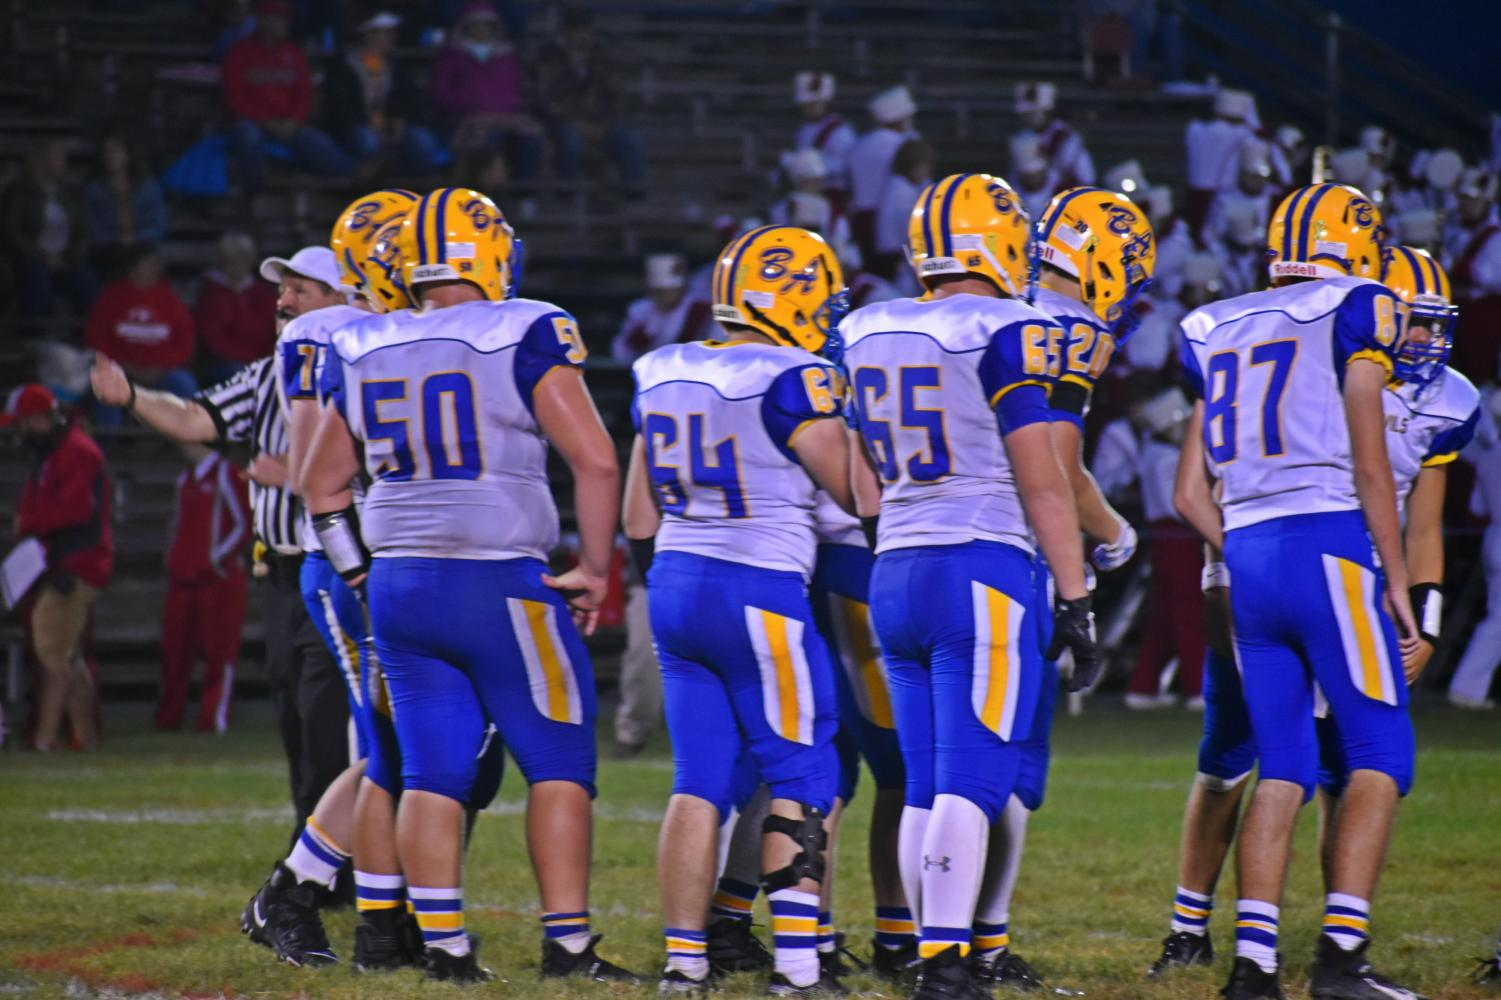 The Bellwood-Antis offensive line has been the team's unsung hero during its 8-0 start.